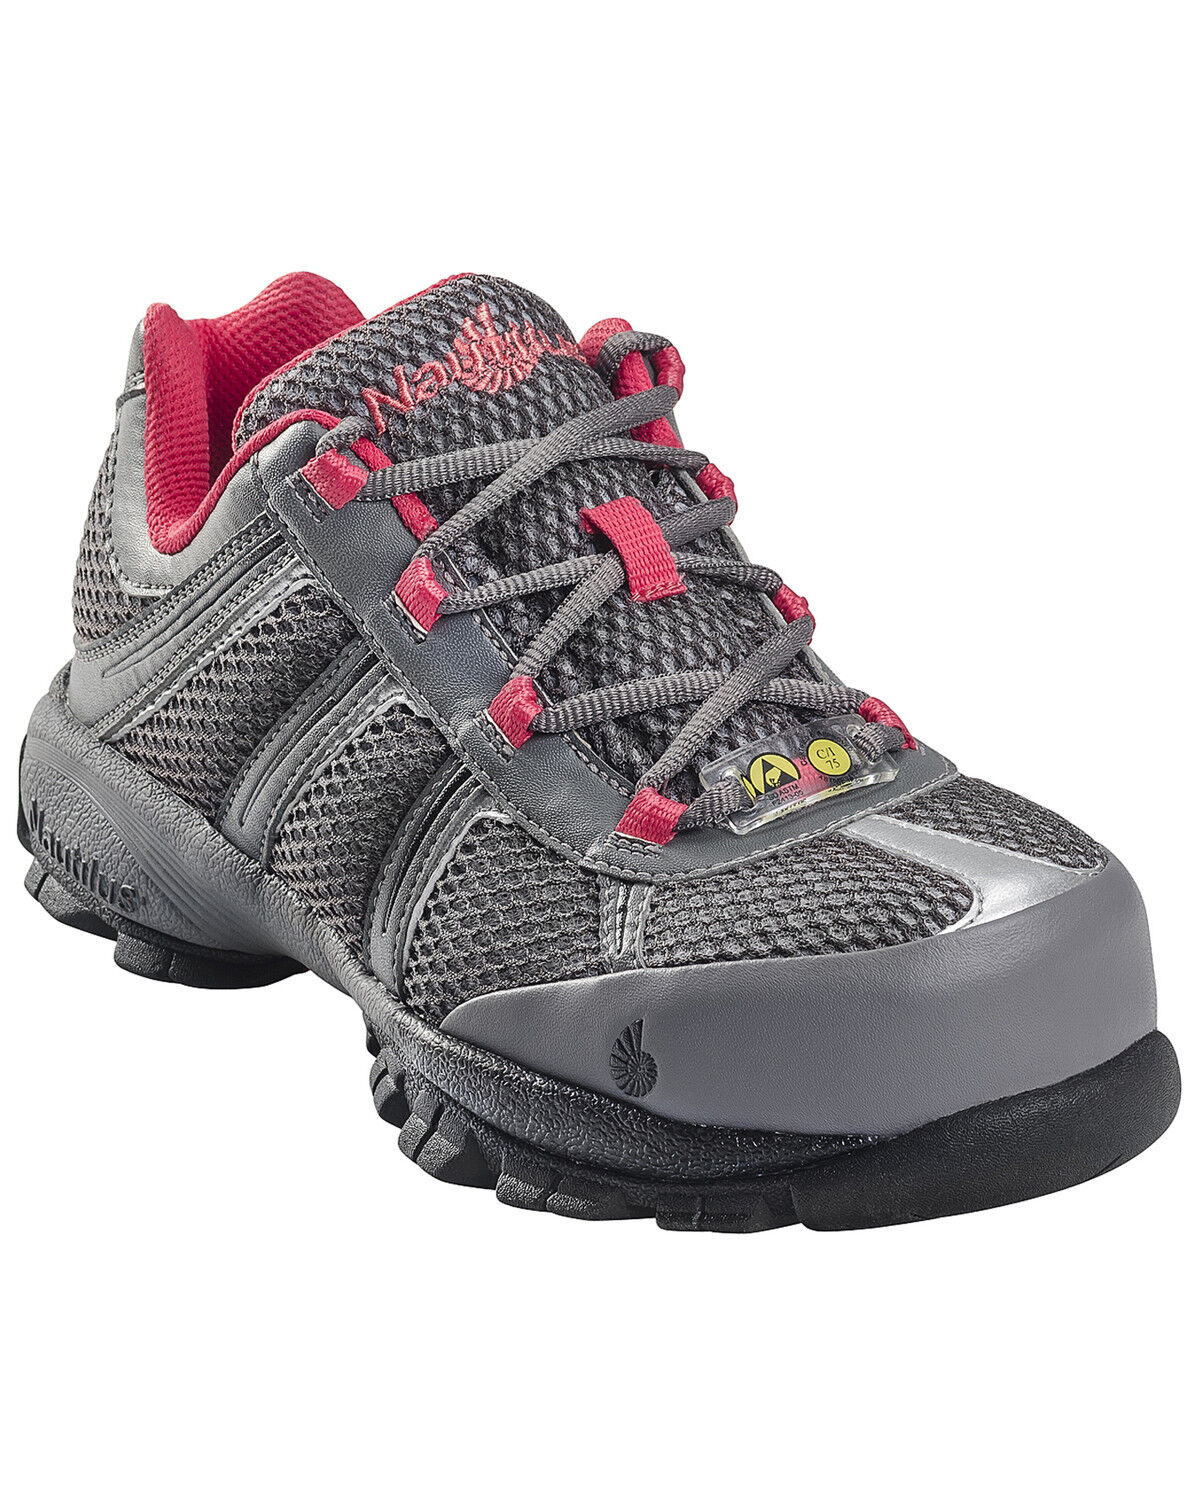 ESD Athletic Work Shoes - Steel Toe